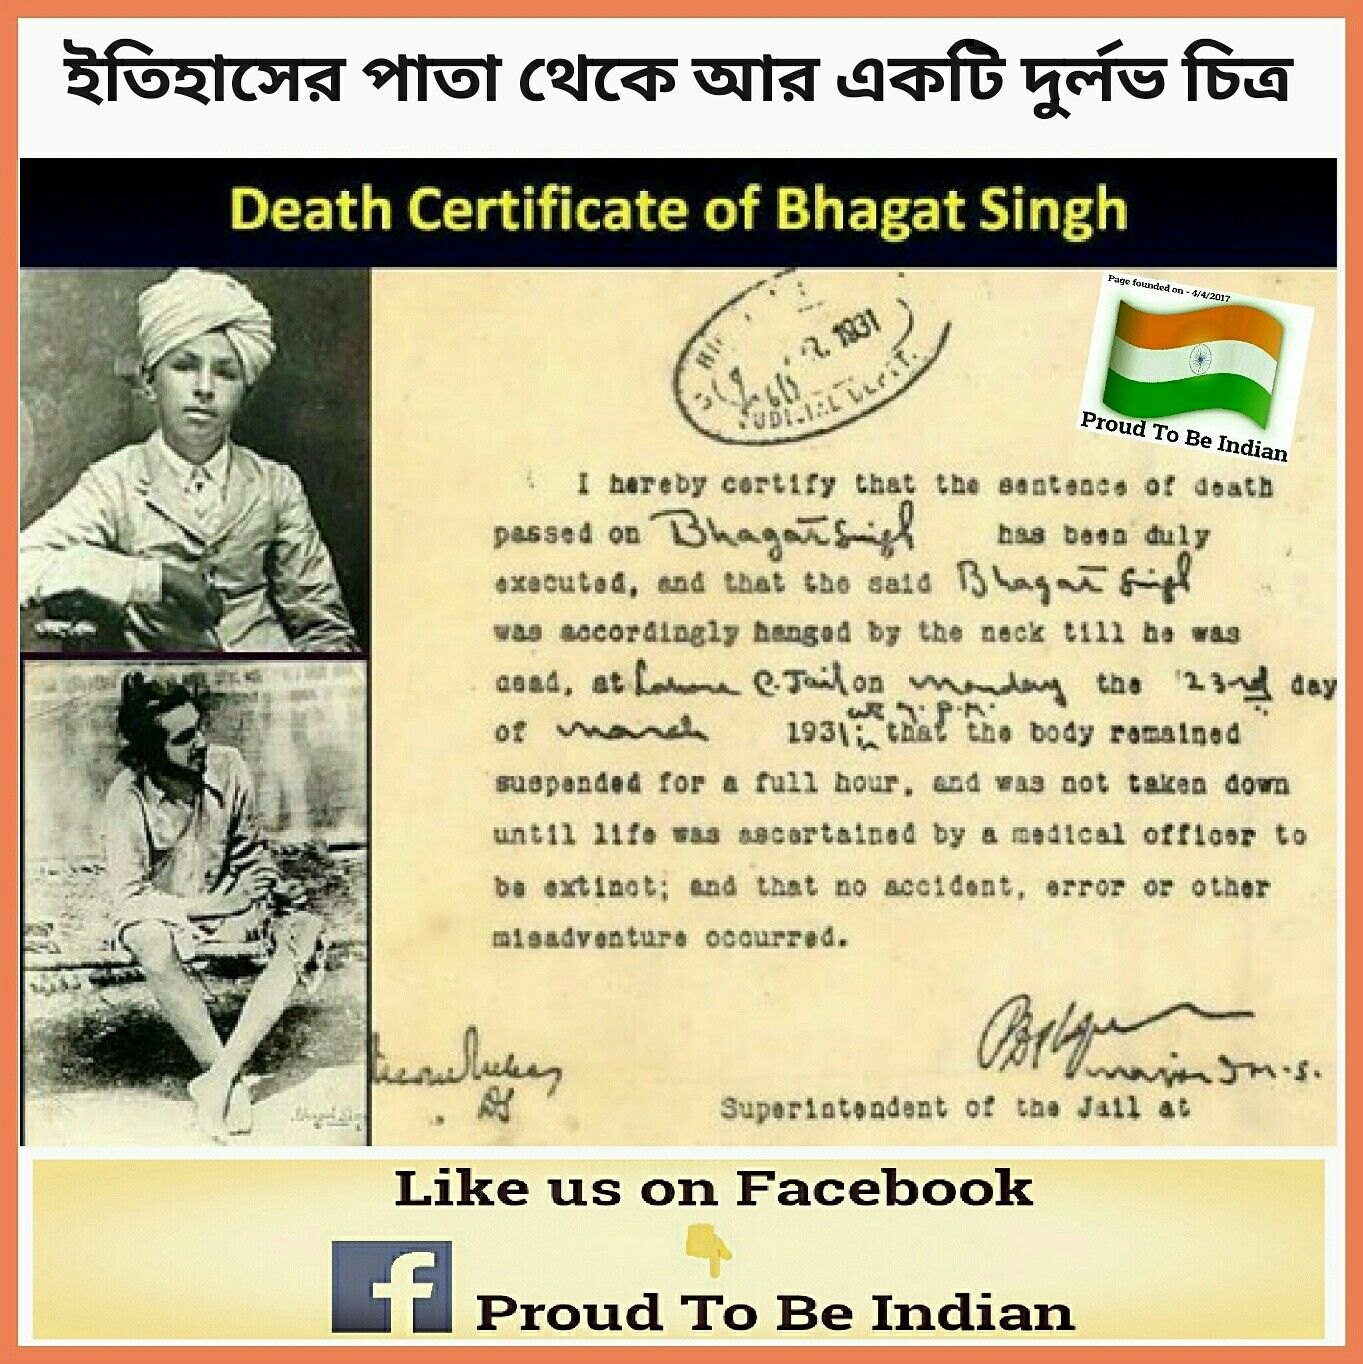 Death certificate image by Ranjan Dey on Proud To Be Indian